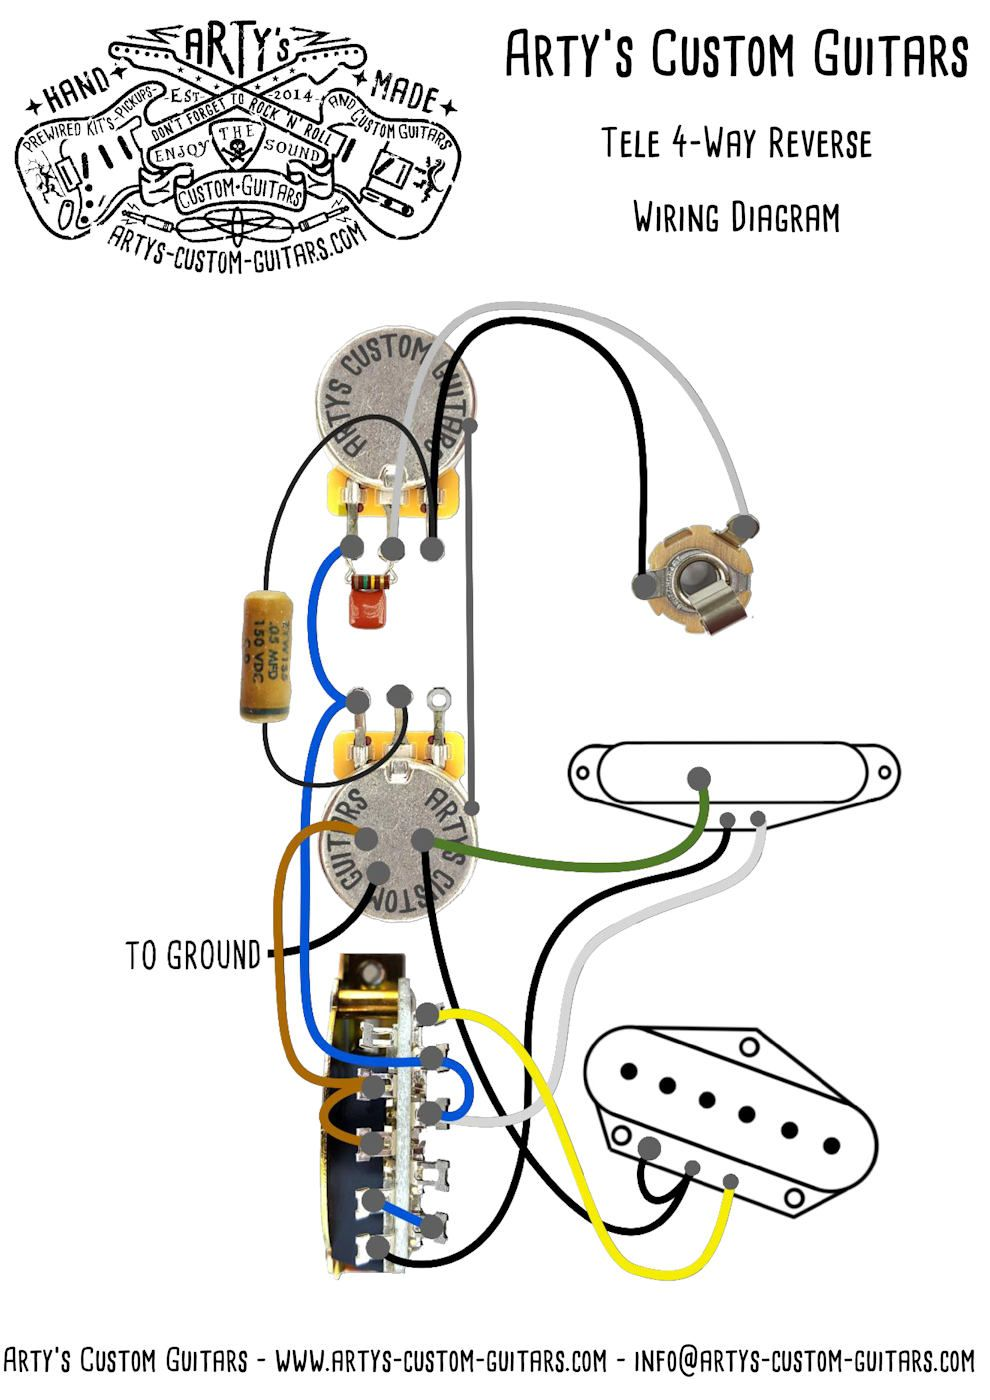 medium resolution of telecaster wiring diagram 3 way reverse www artys custom guitars com